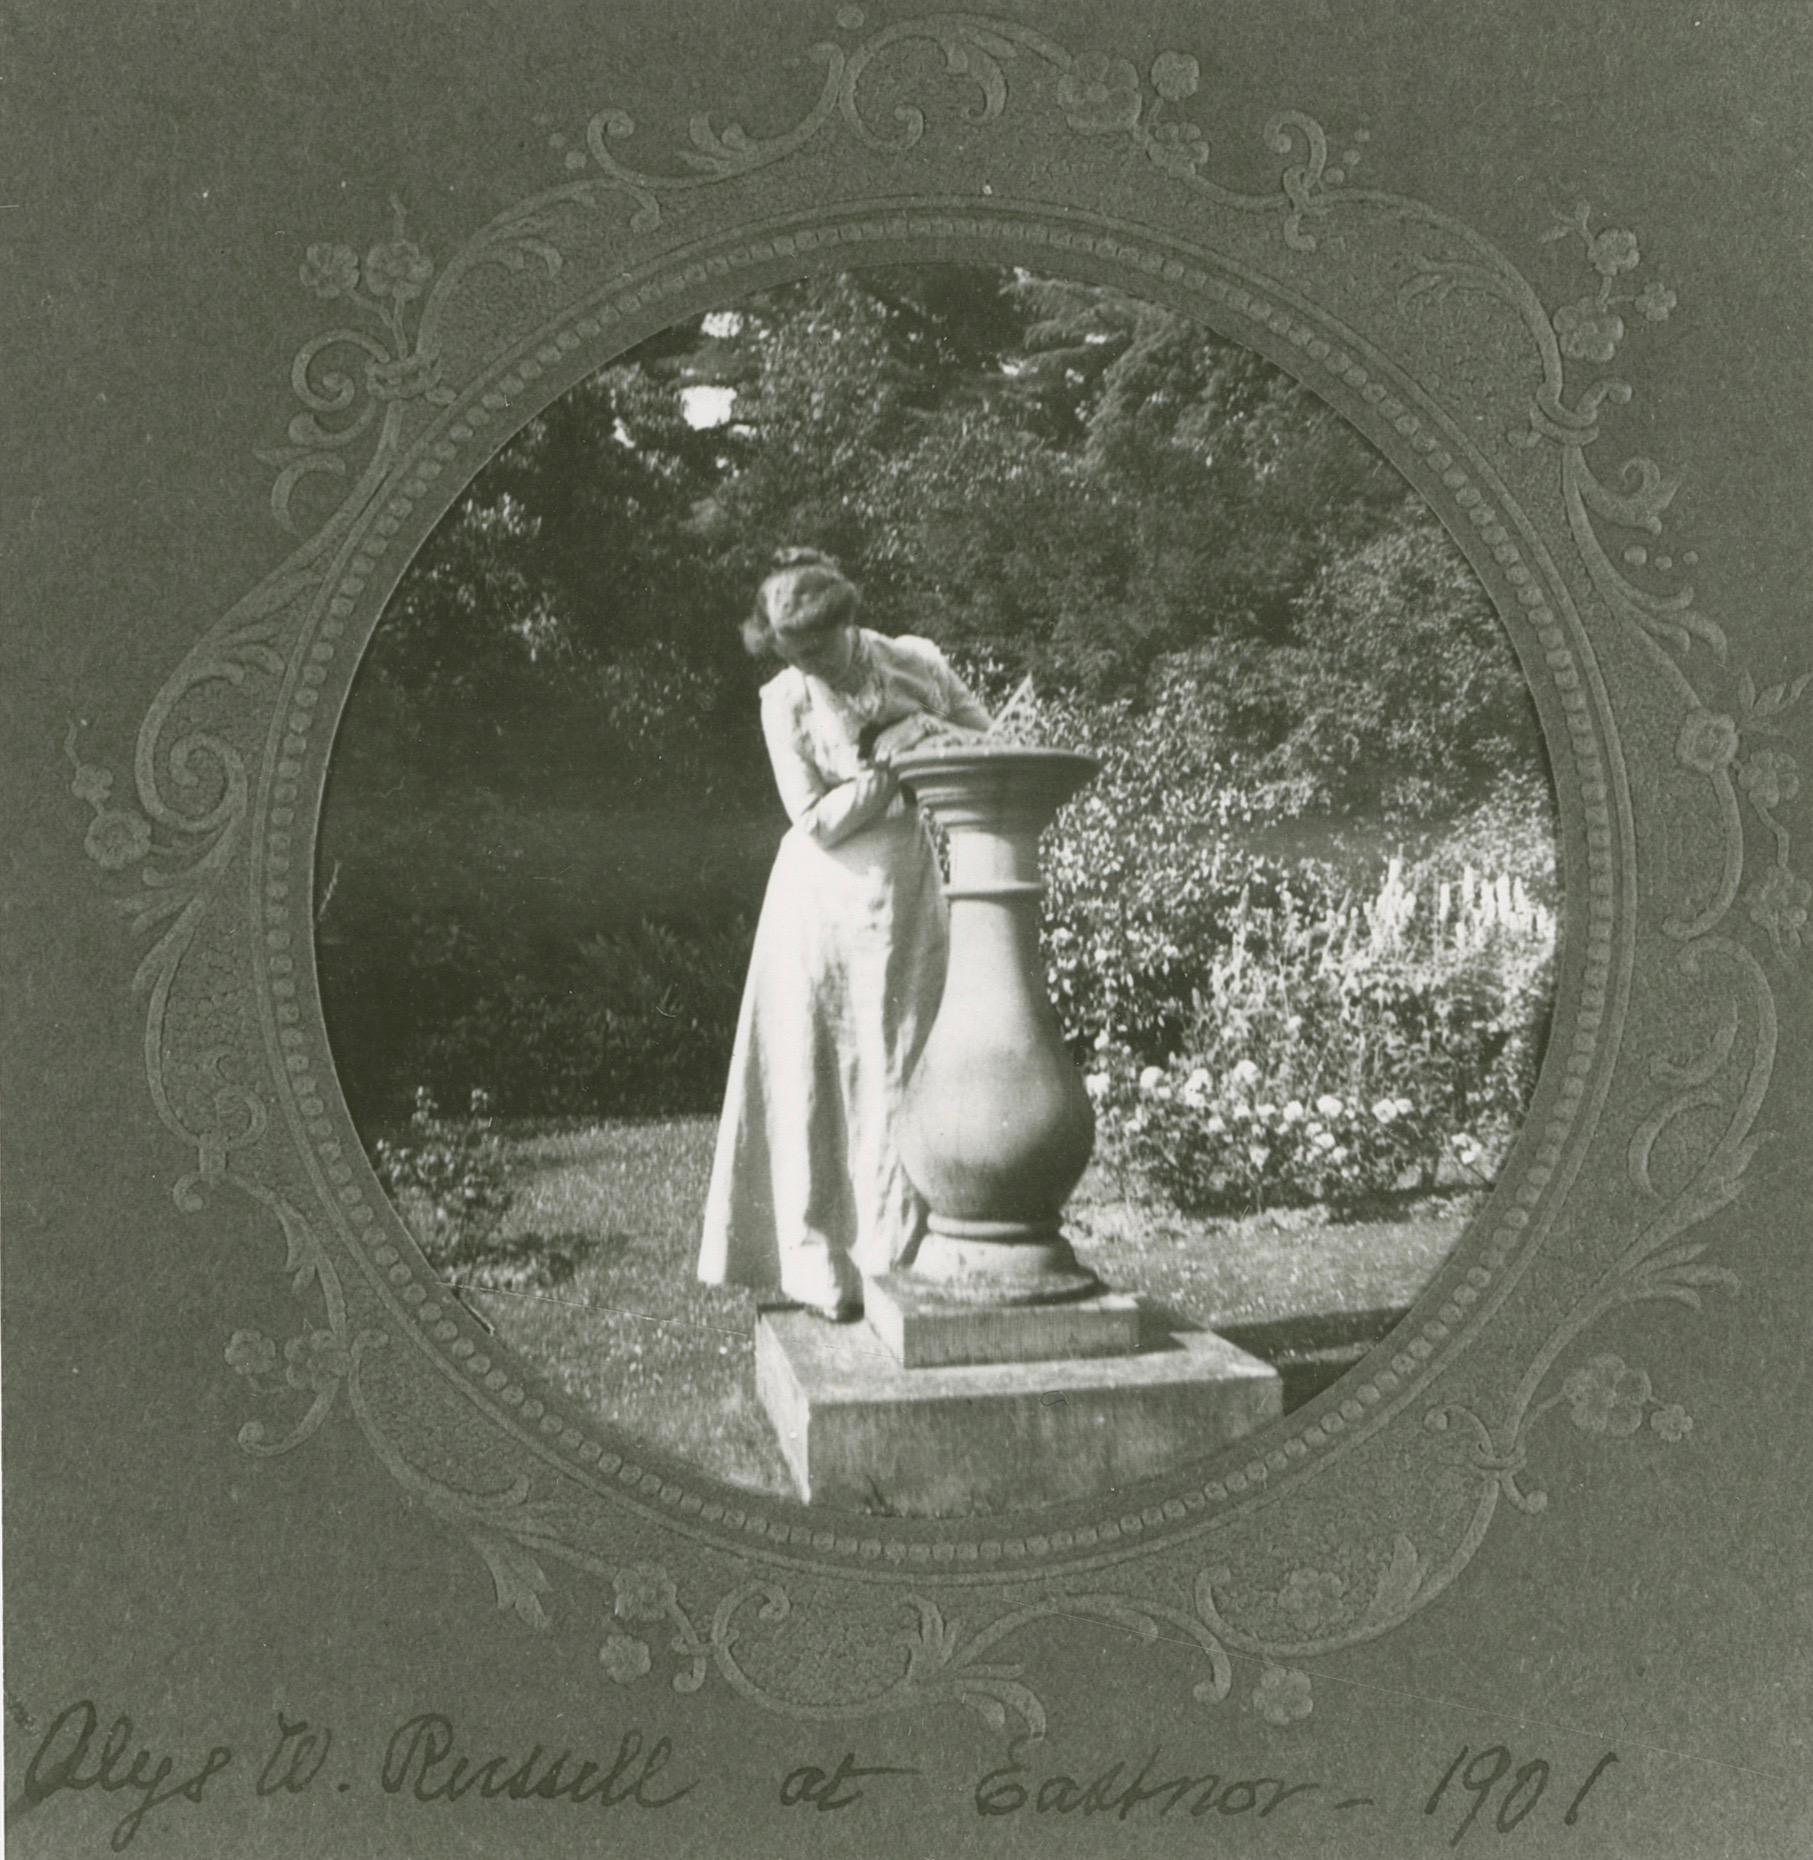 White woman leaning against a large planter in a garden.